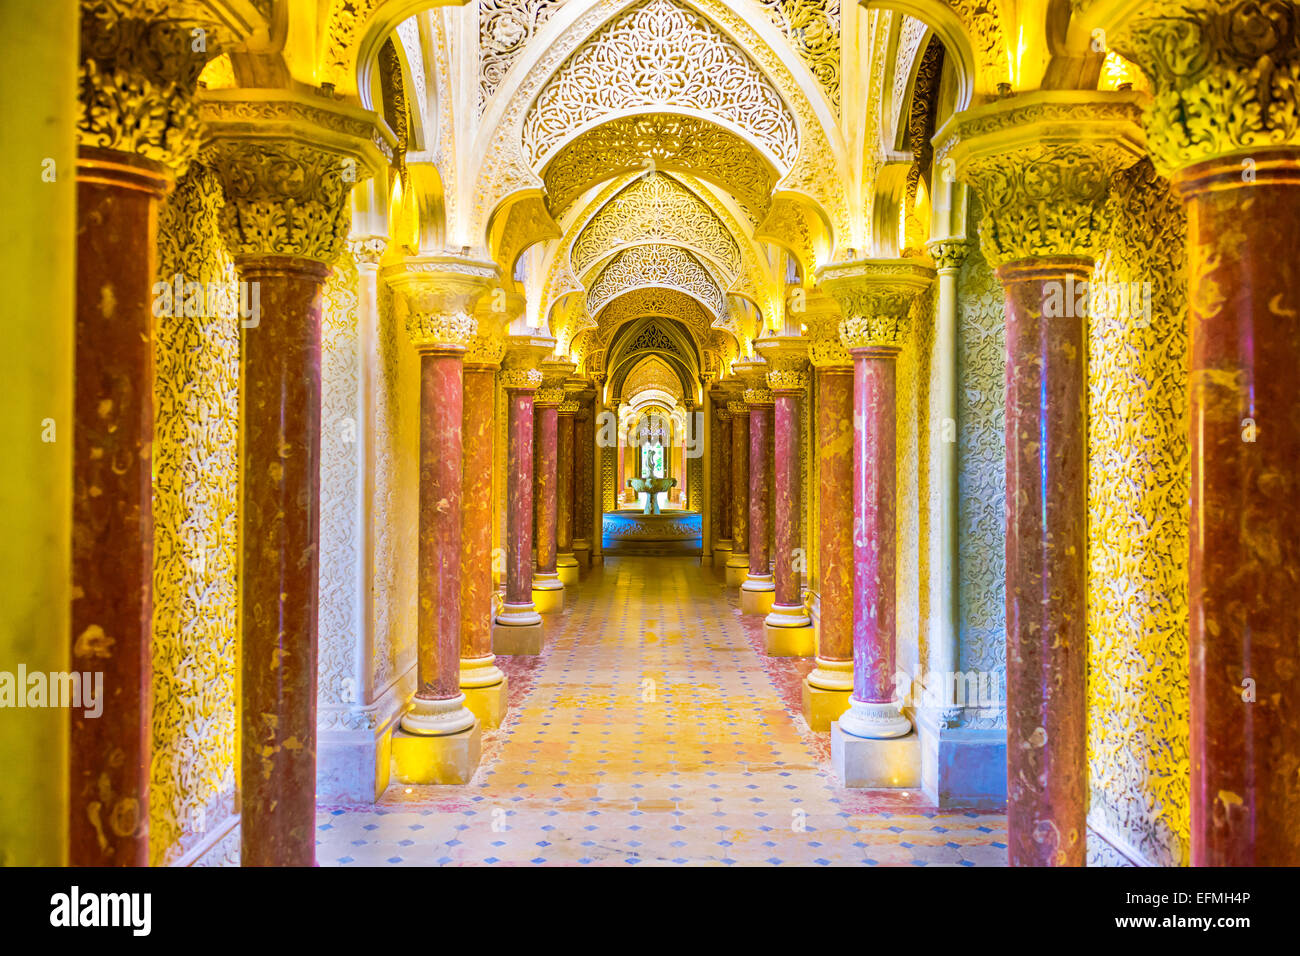 Monserrate Palace in Sintra, Portugal. - Stock Image